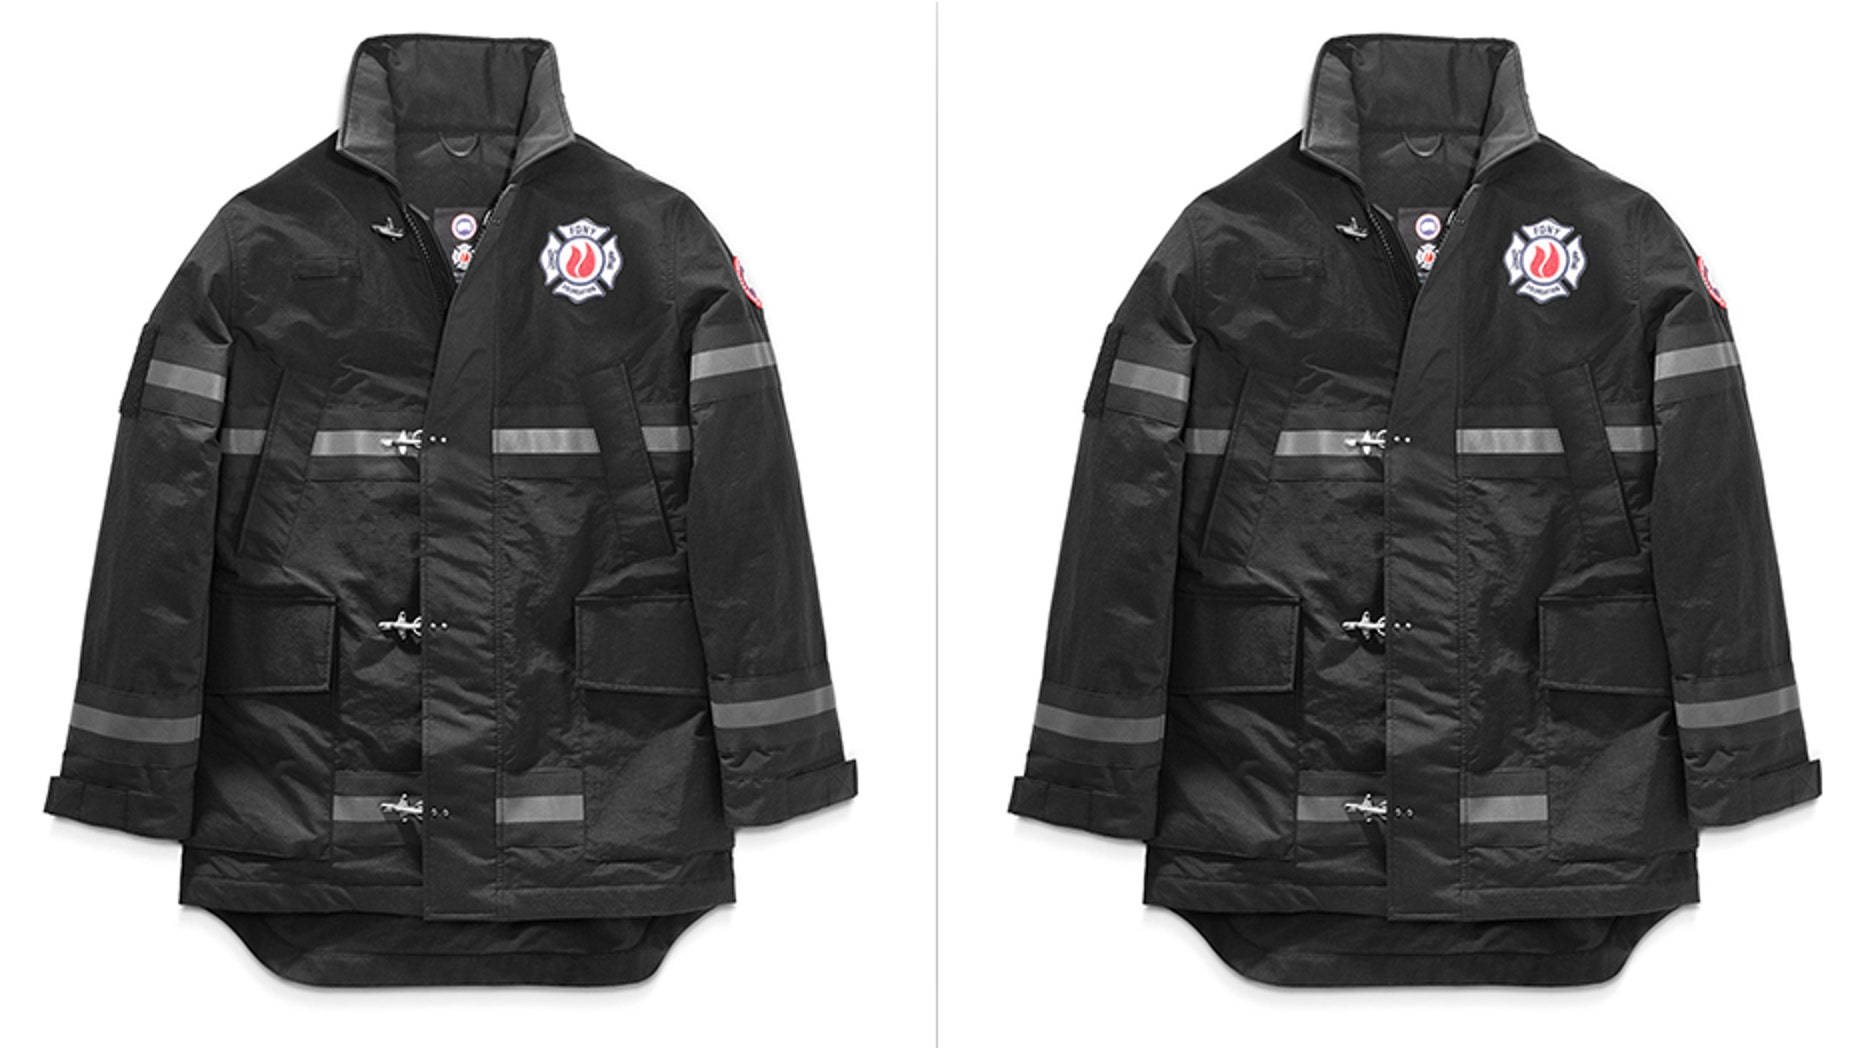 PETA and the FDNY Foundation are sparring over the coats.